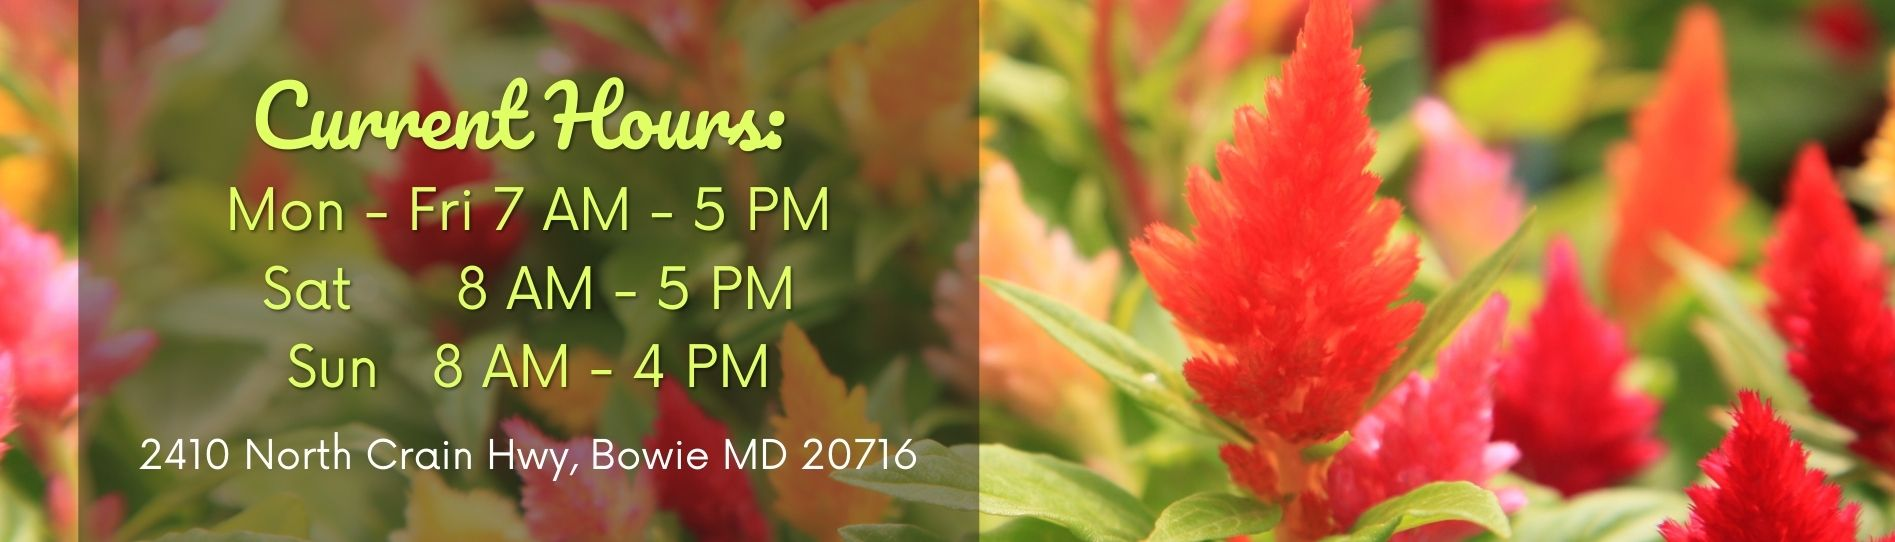 Celosia Flowers New Store Hours Banner